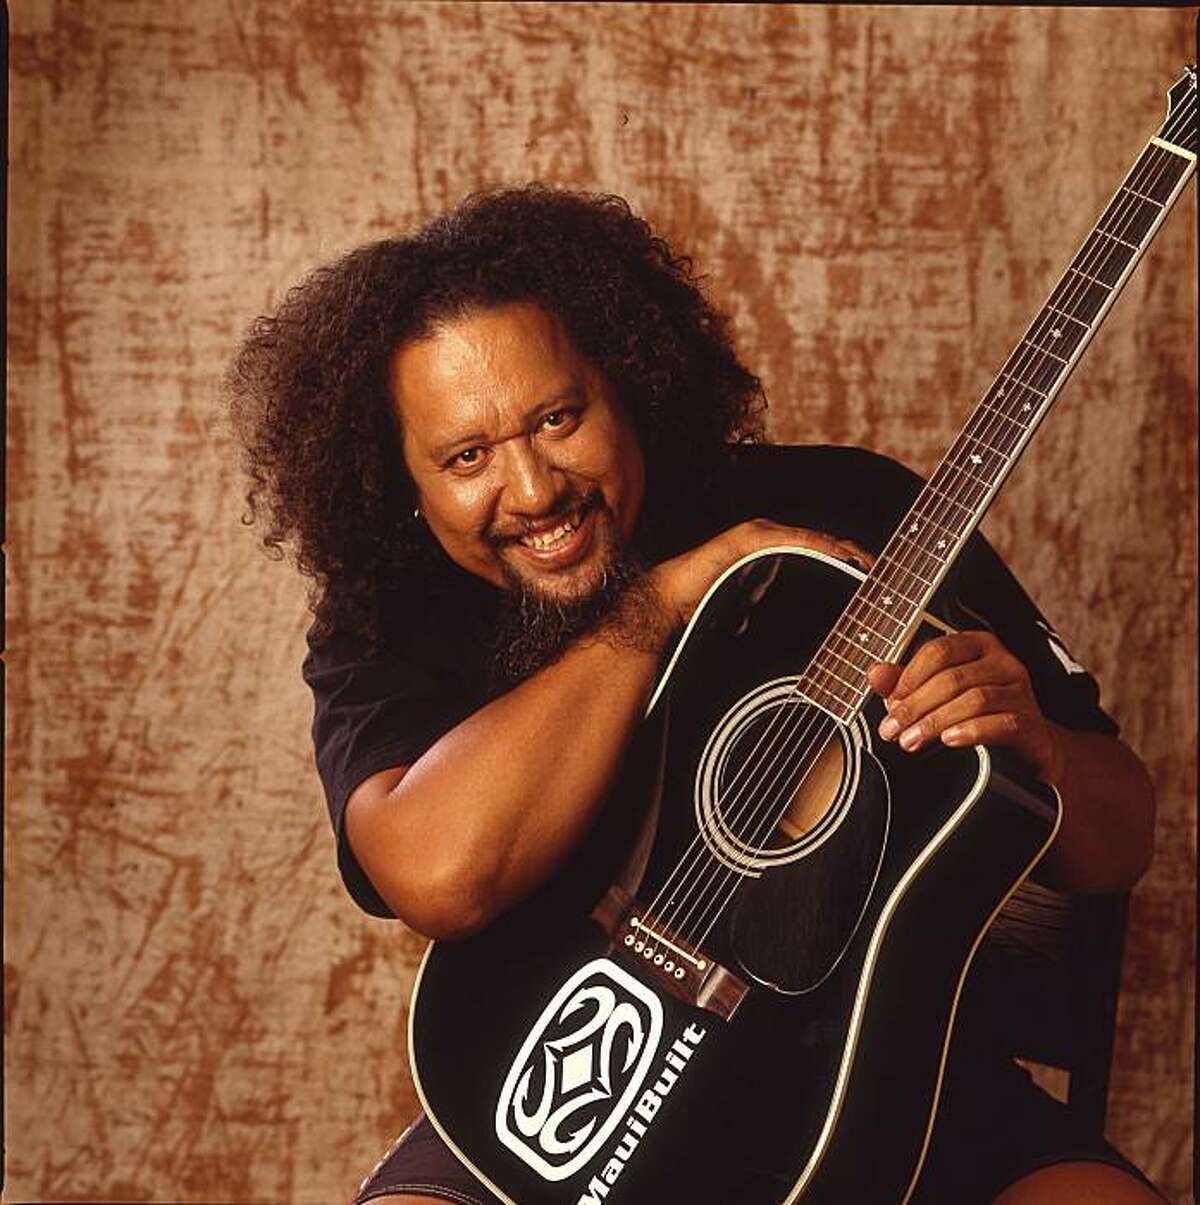 Willie K, a popular recording artist from Maui, is one of the contributors to